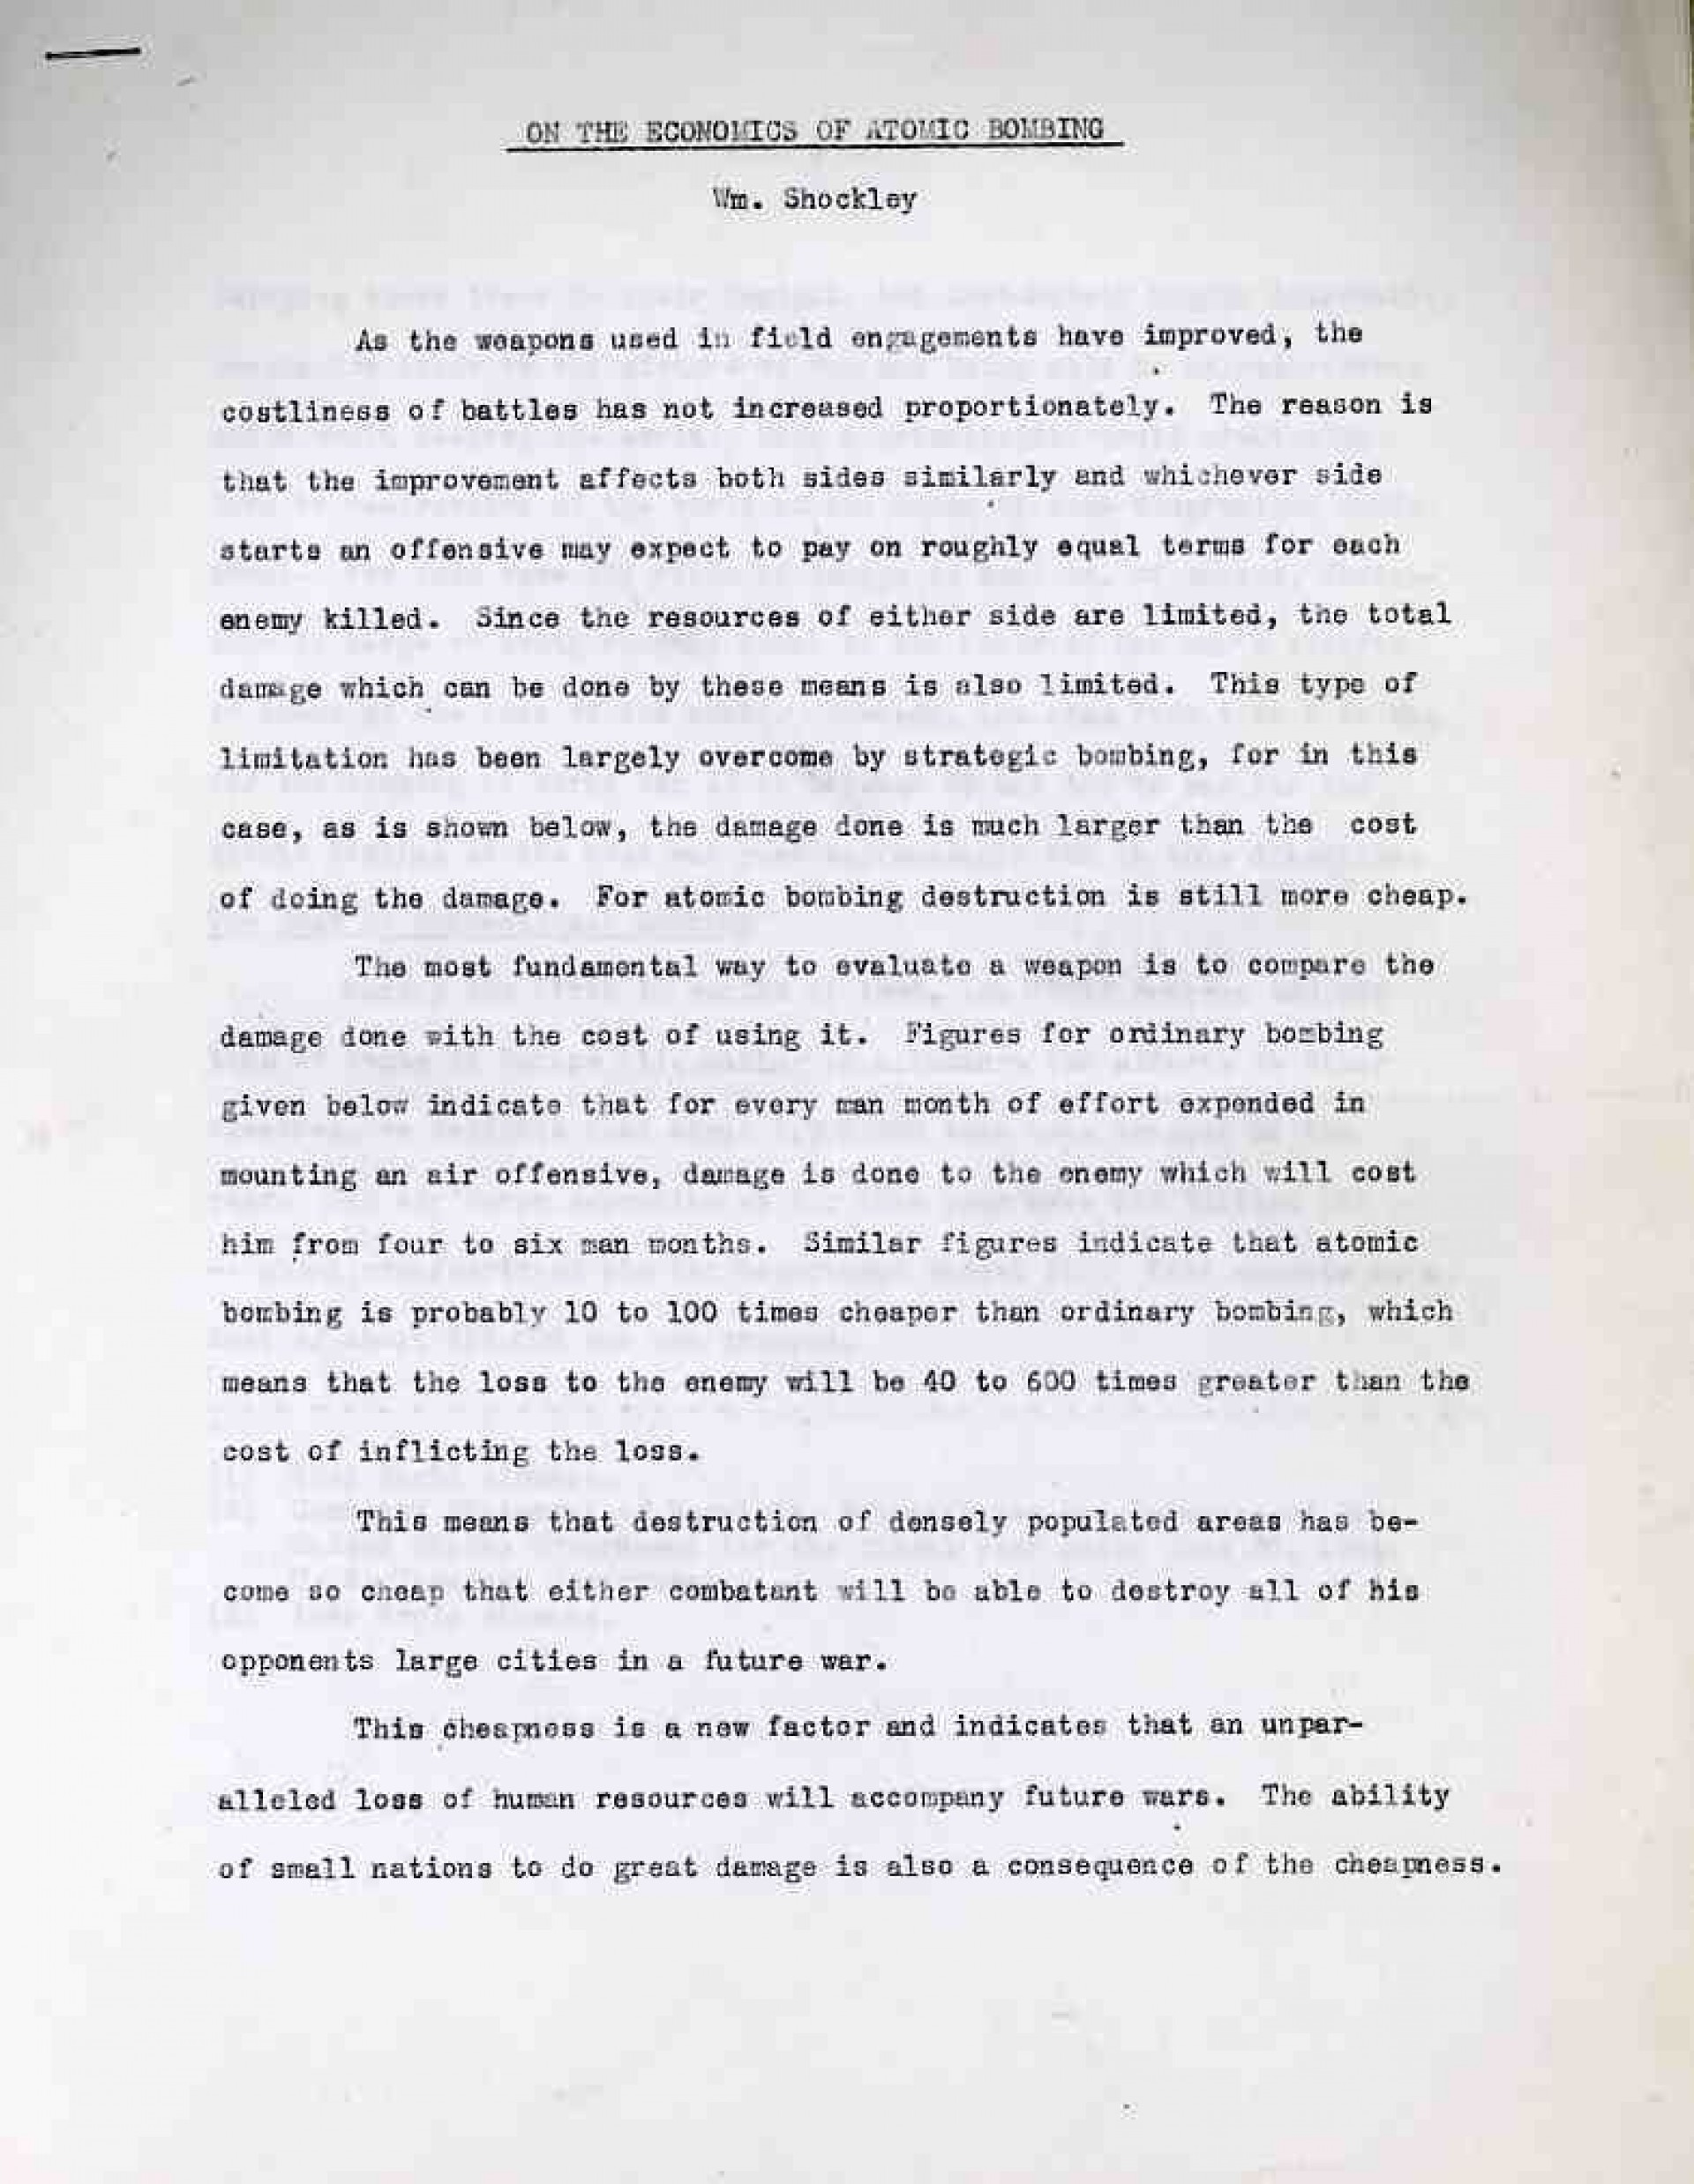 012 Atomic Bomb Essay Example Shocking Outline Conclusion Good Title For 1920